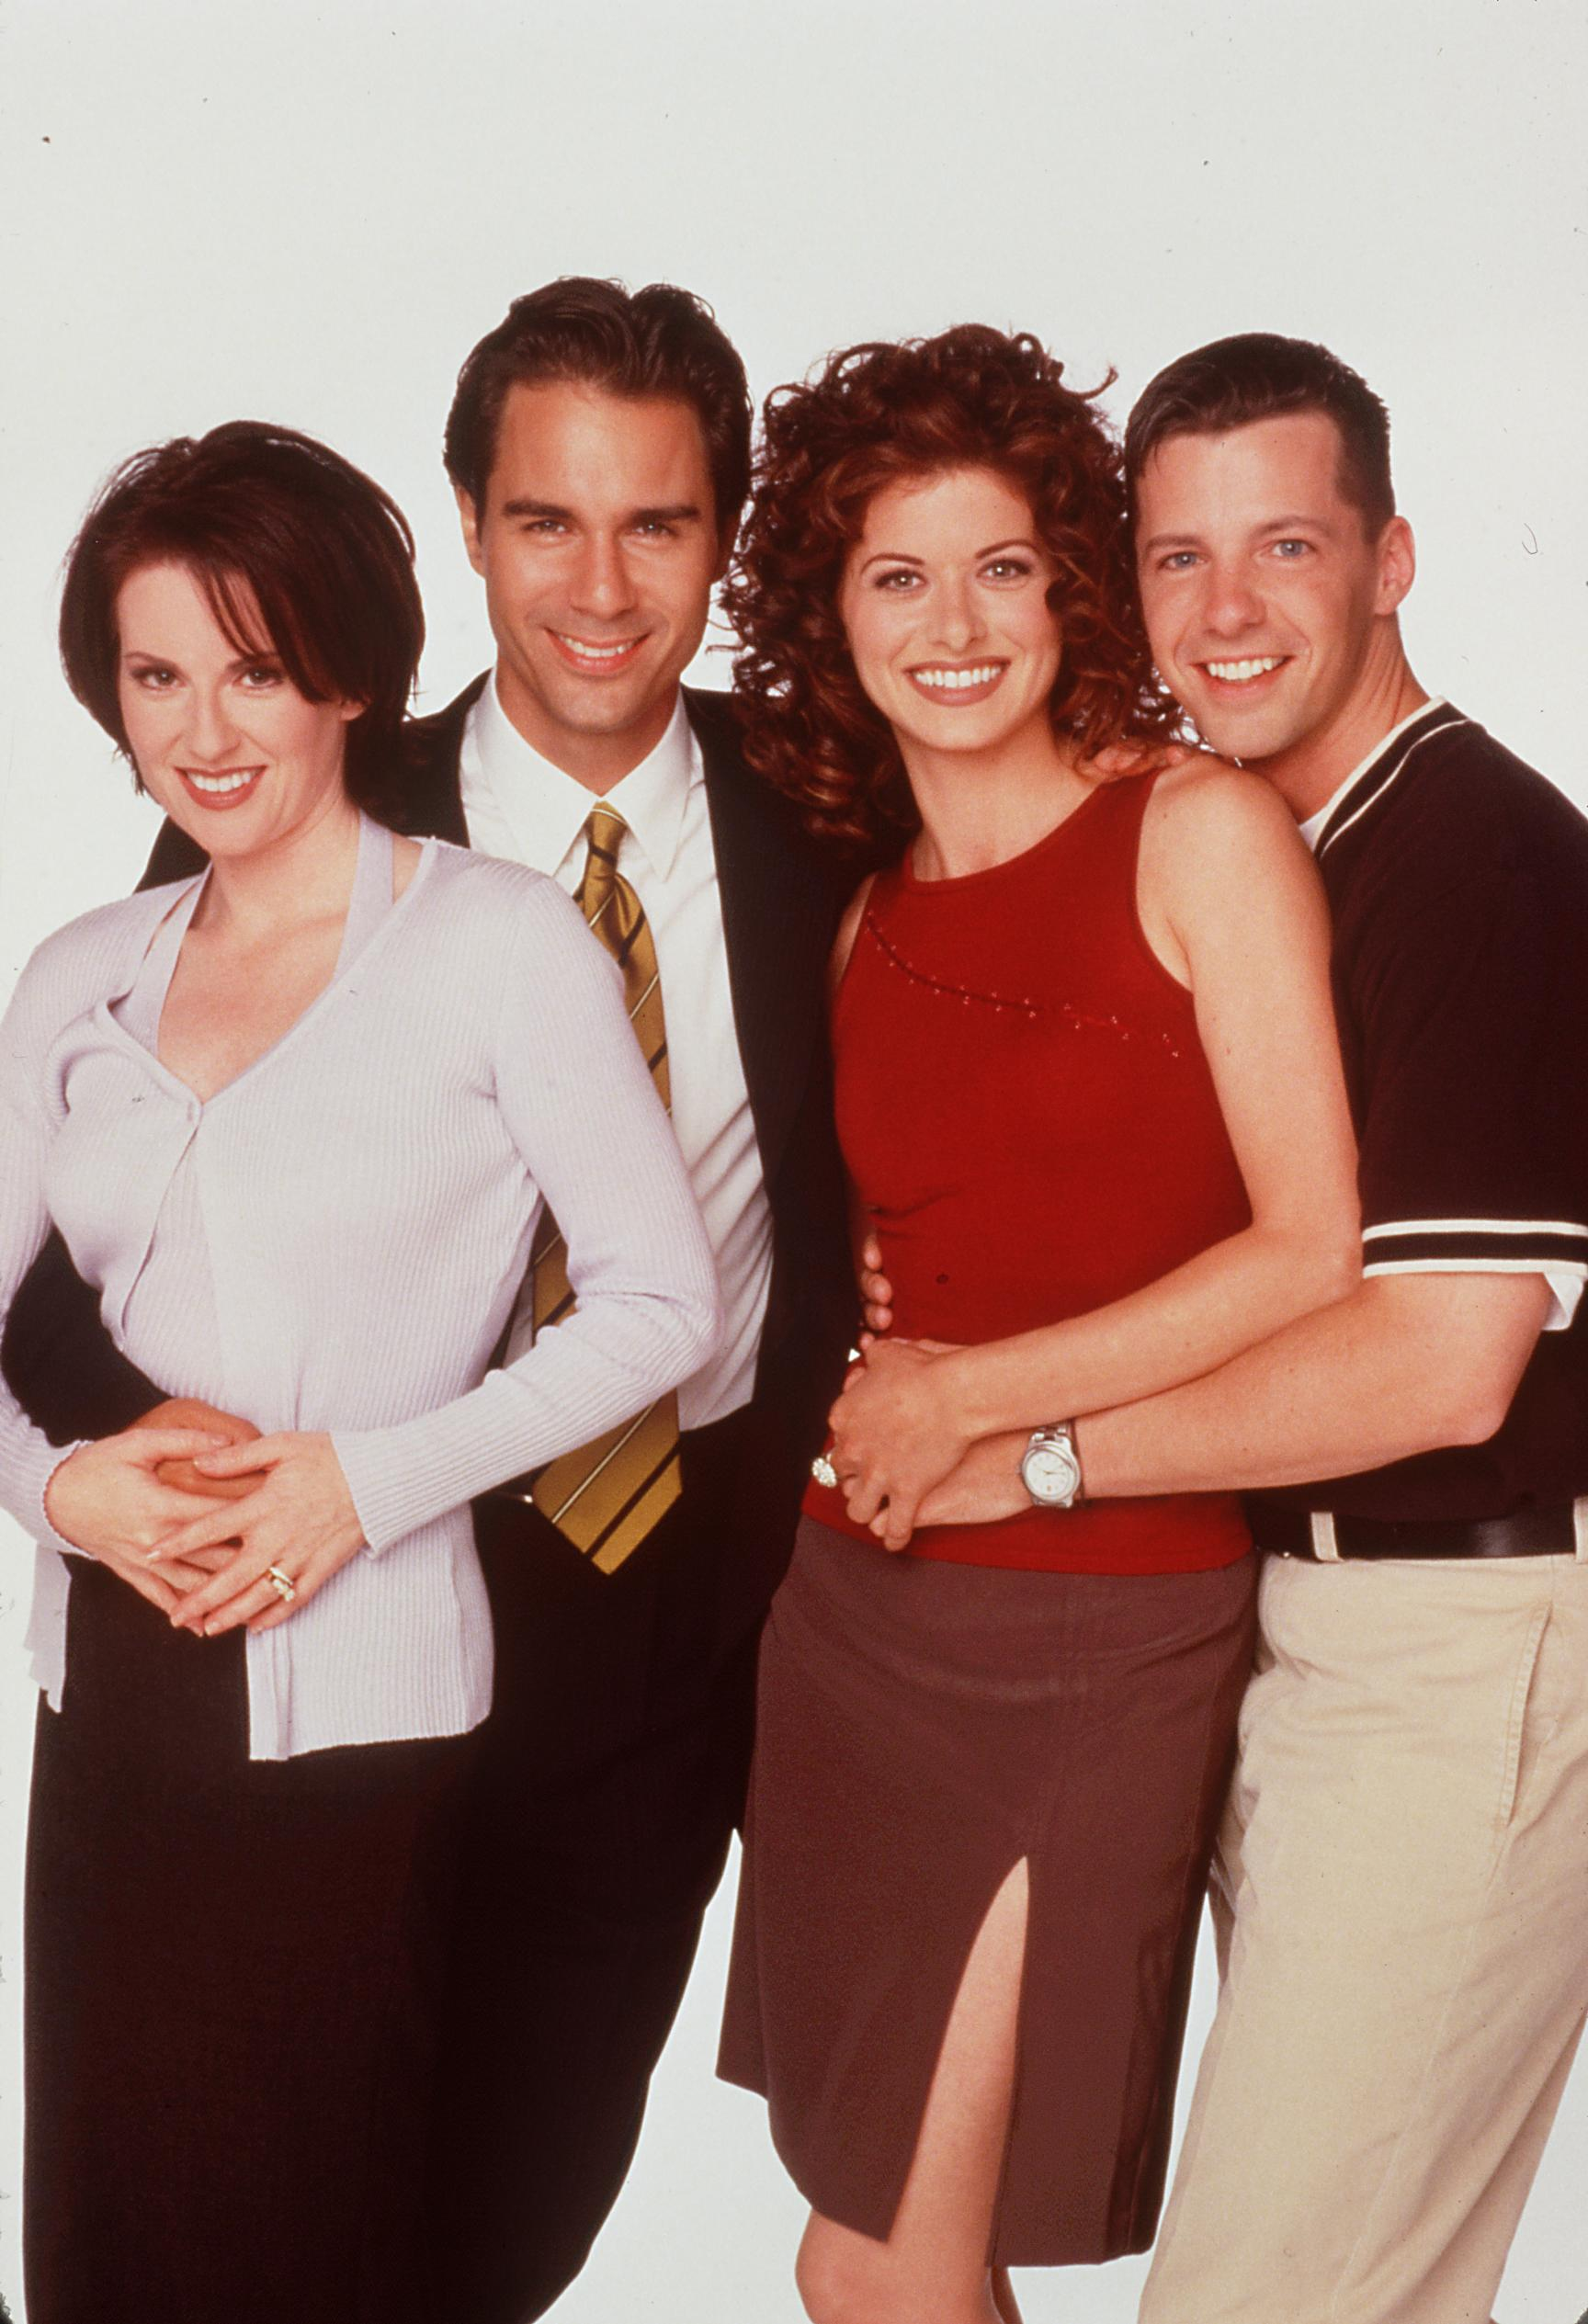 Image Source: Getty Images| A promotional photoshoot for Will & Grace